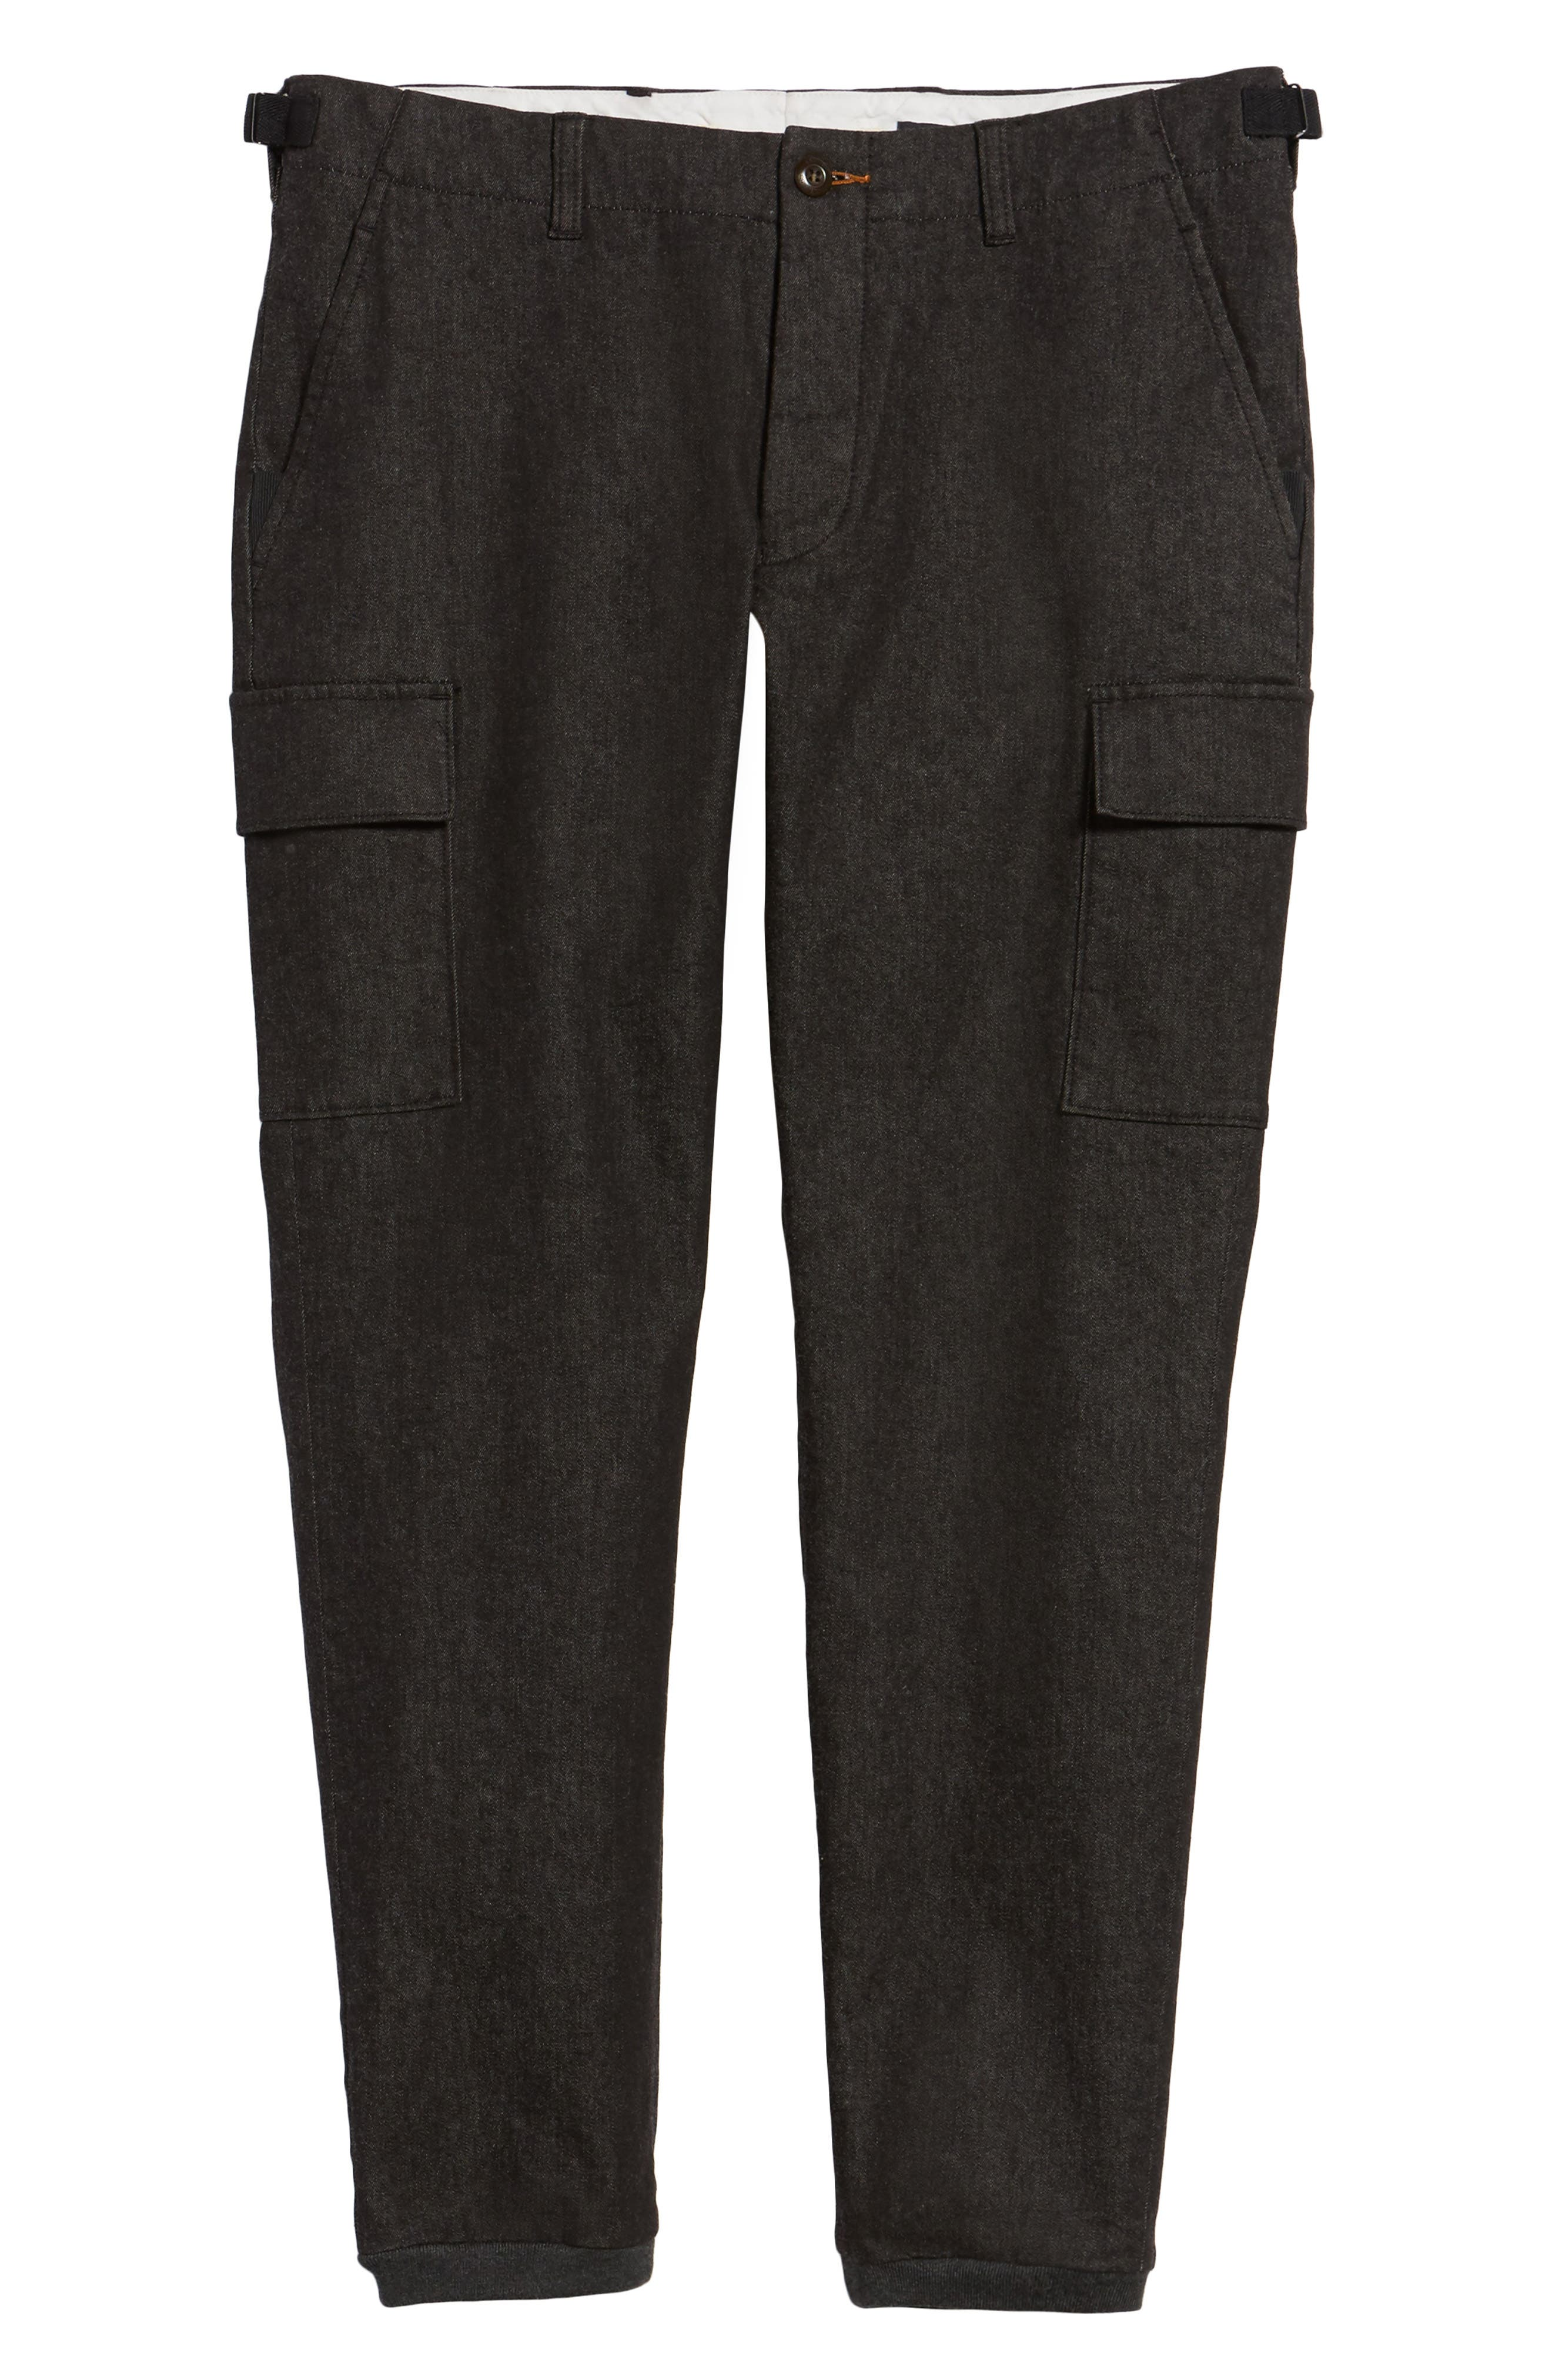 Brushed Stretch Twill Pants,                             Alternate thumbnail 6, color,                             Charcoal Mel